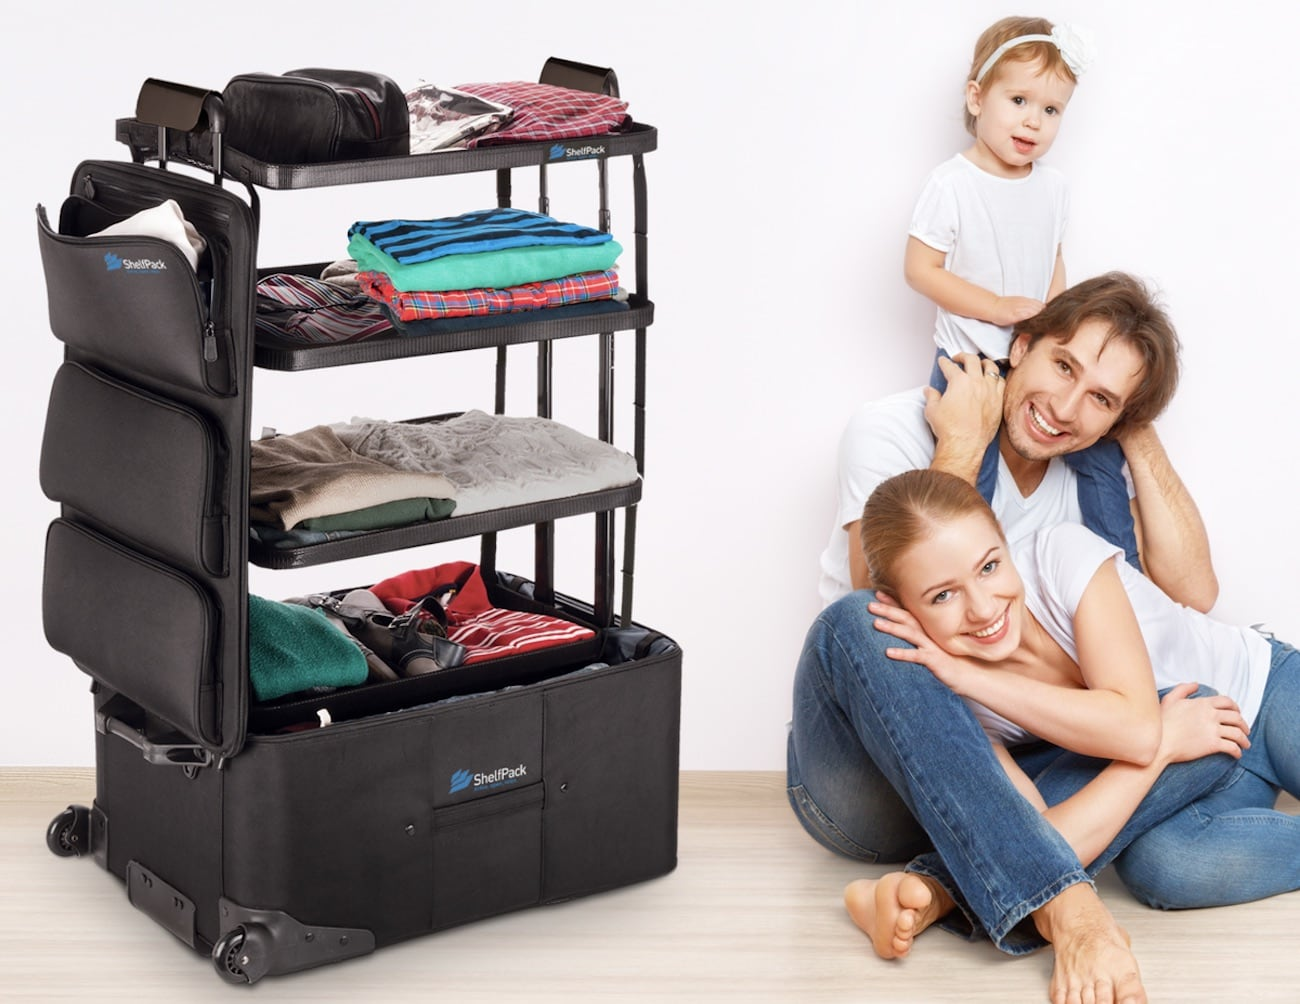 ShelfPack Built-In Shelves Luggage